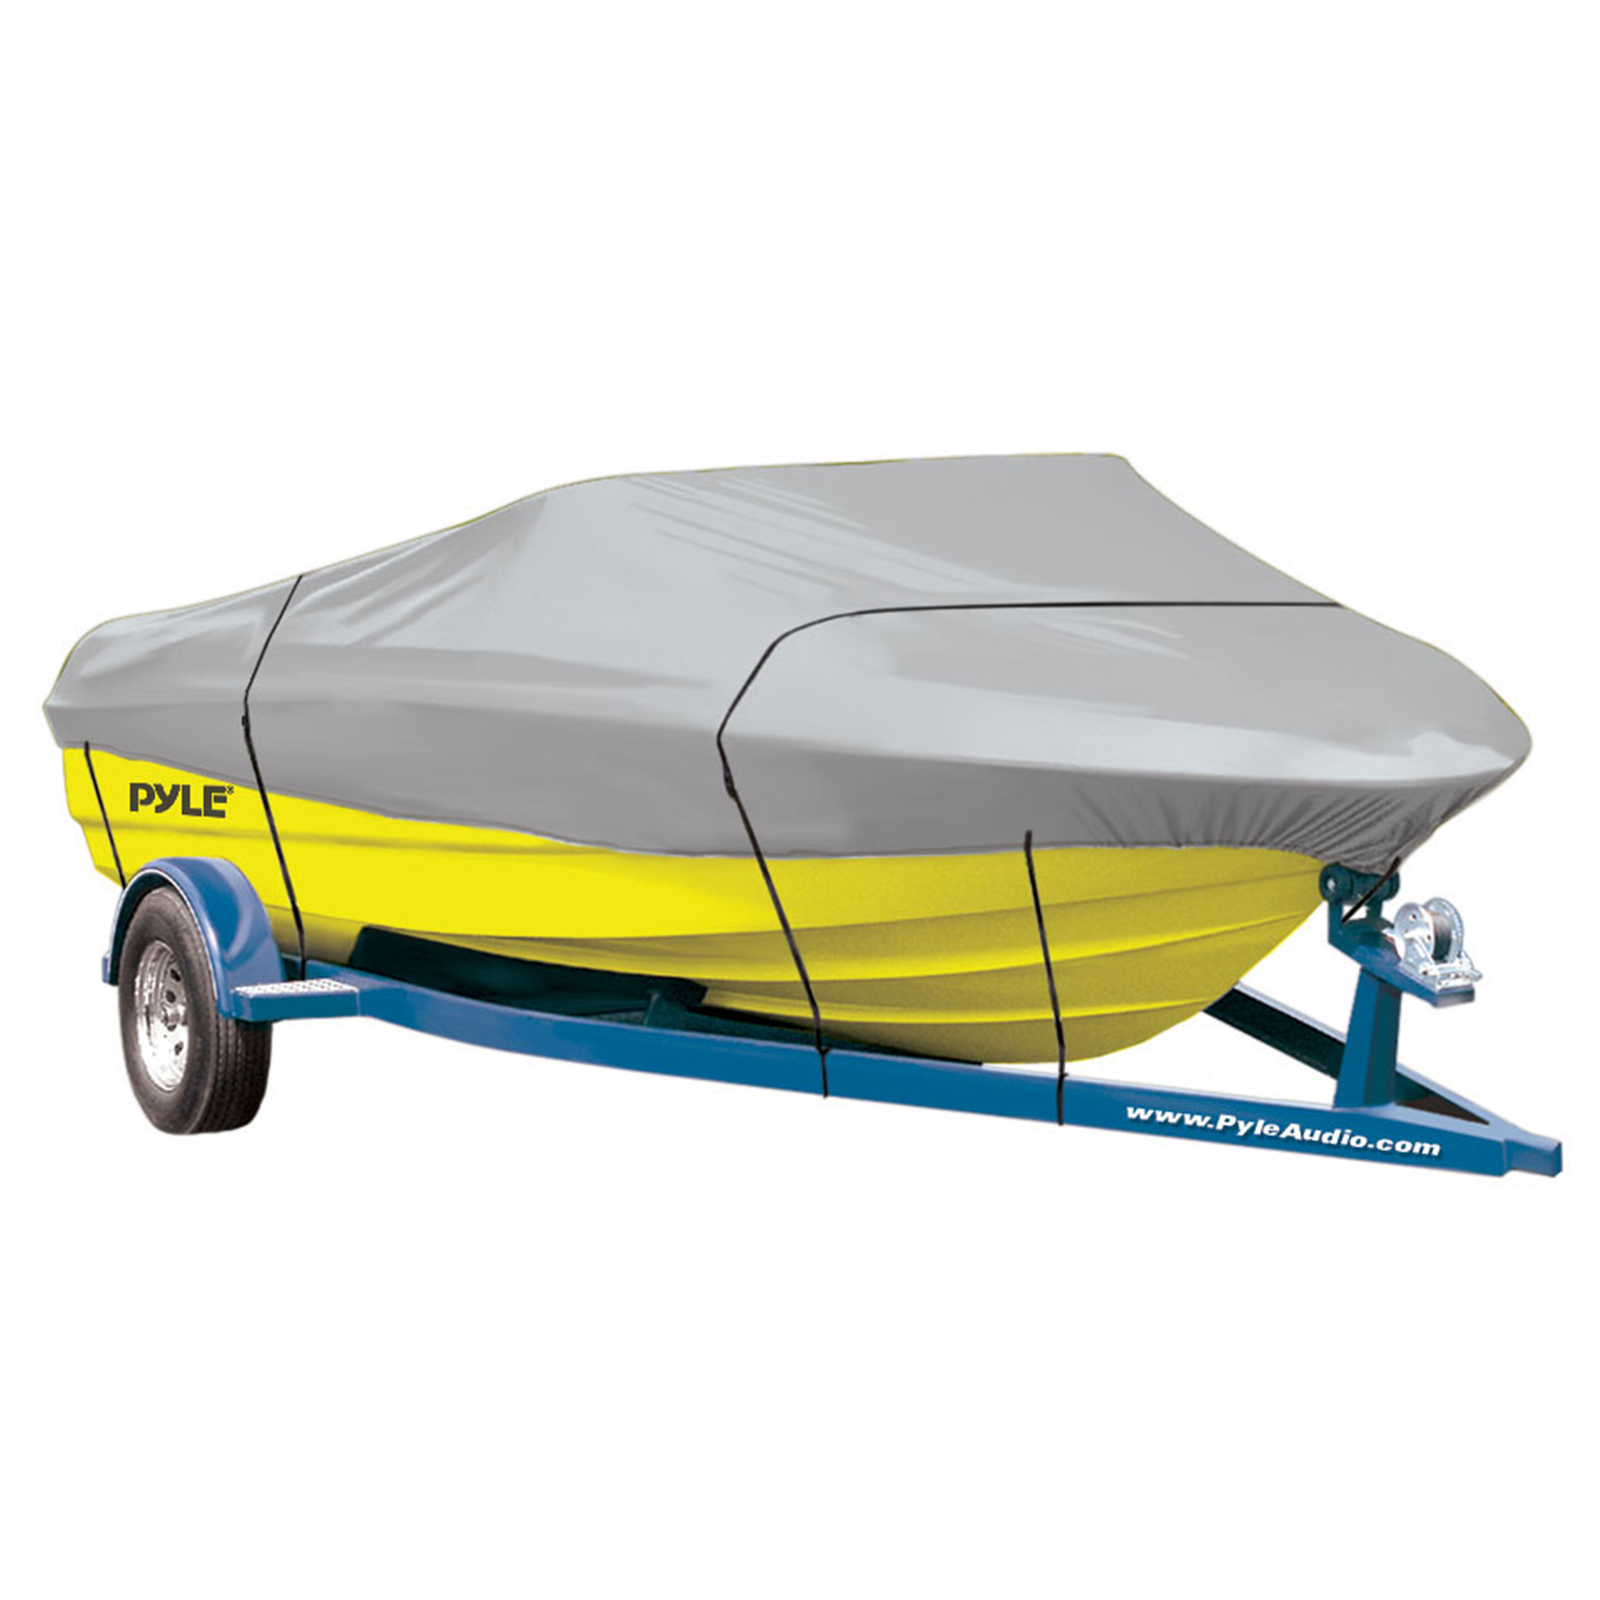 """Pyle Armor Shield Trailer Guard Boat Cover 20'-22'L Beam Width to 106"""" V-Hull Runabouts Outboards & I/O"""